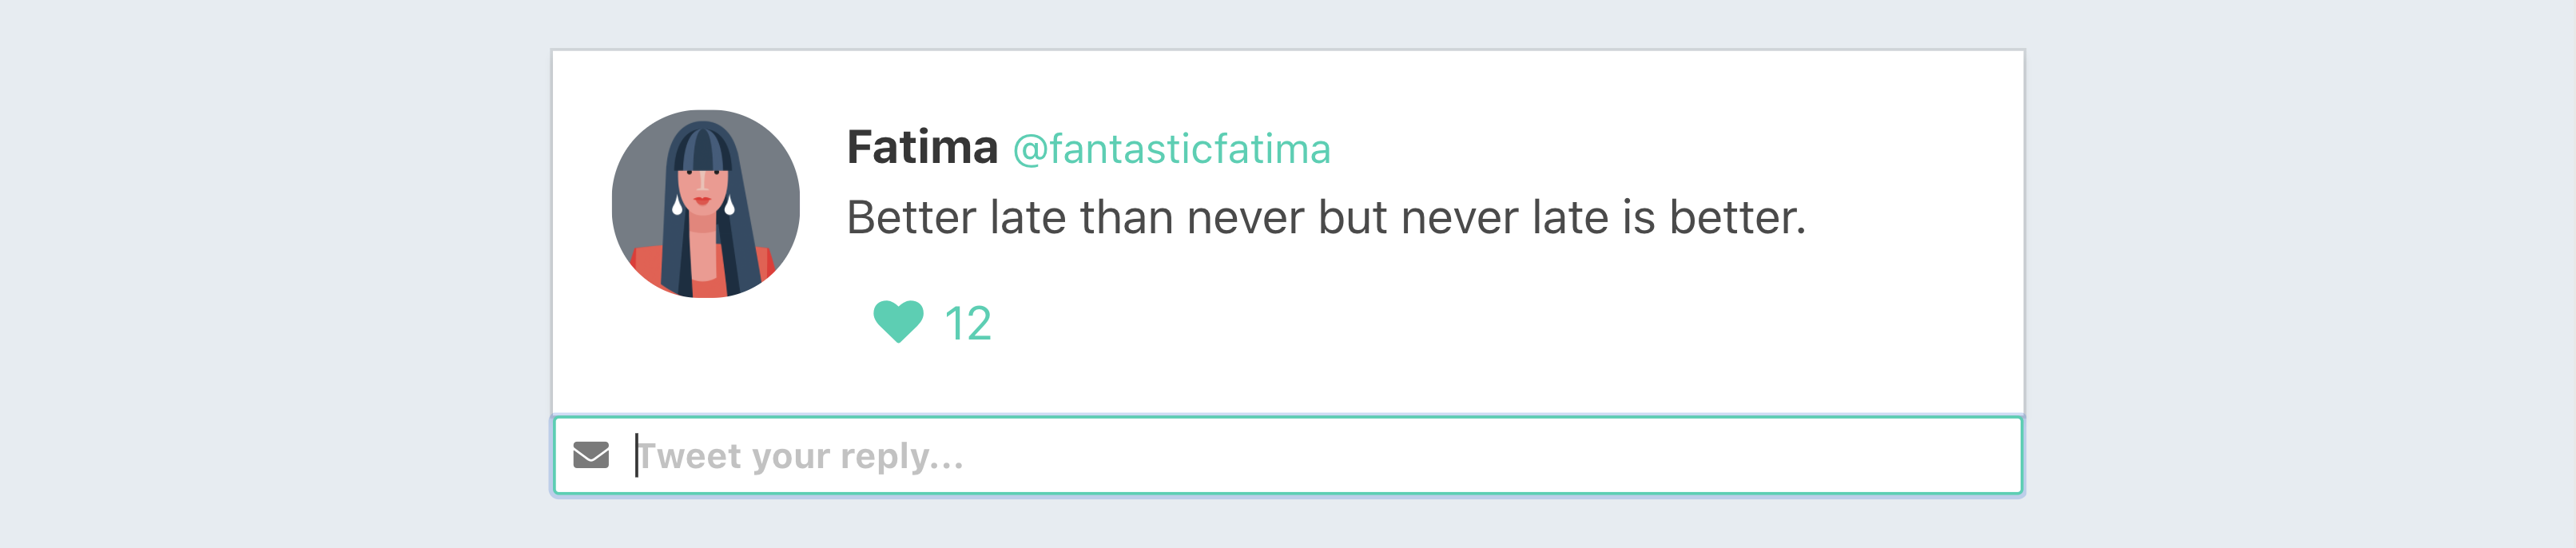 A mockup of the tweet we are trying to create that looks exactly like the one diagramed earlier. This one has an additional component that includes a text input for submitting a reply.